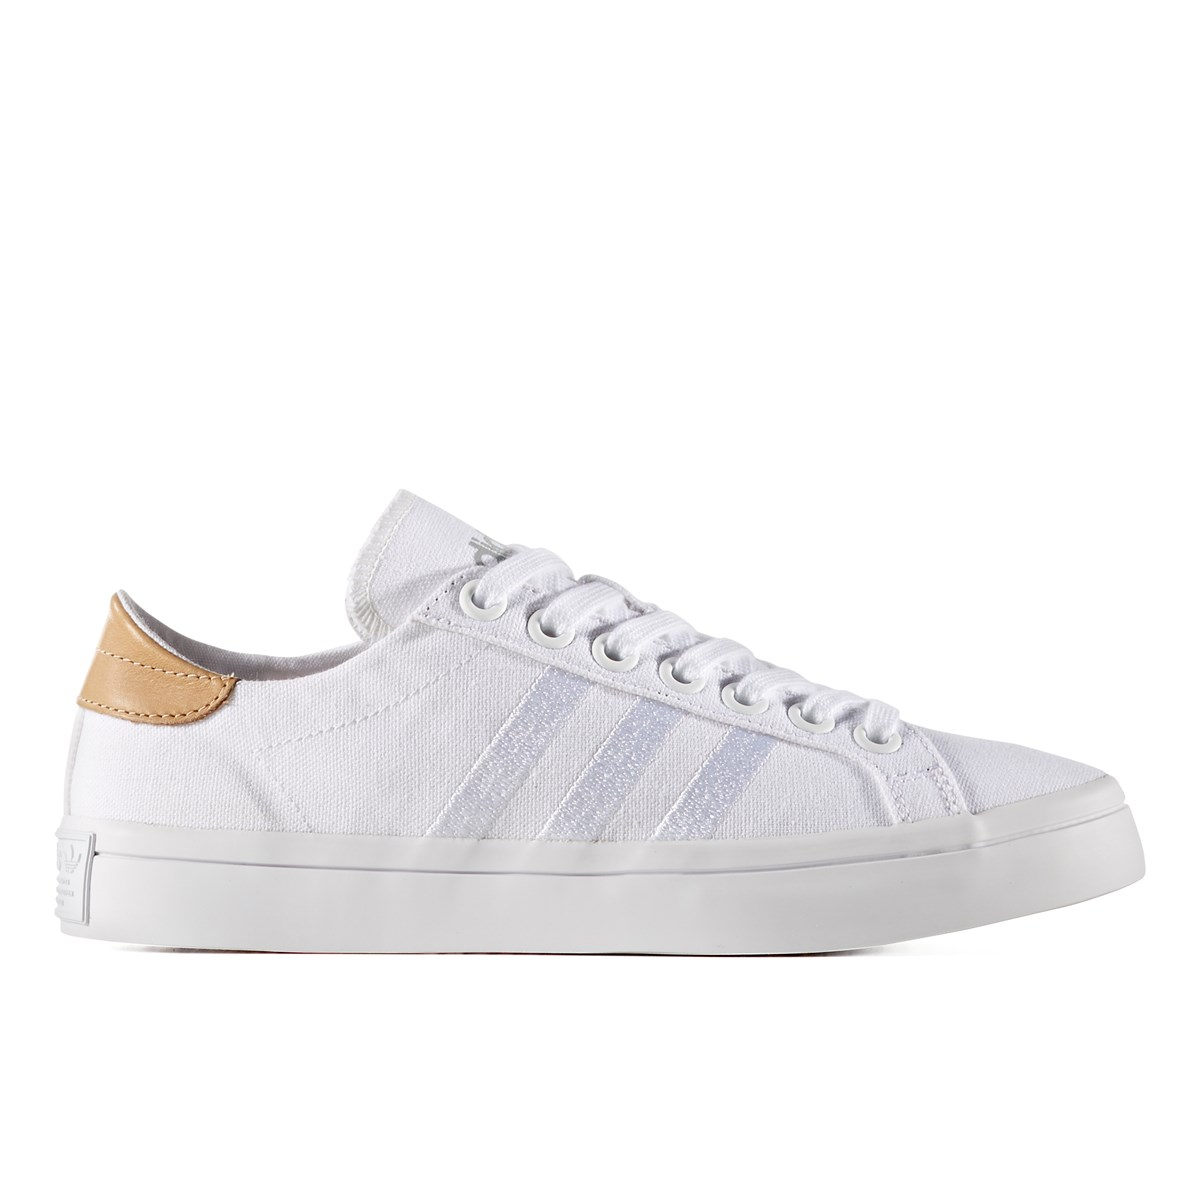 hot sale online e68d0 f44a2 Womens Courtvantage White Sneaker. Previous. default view